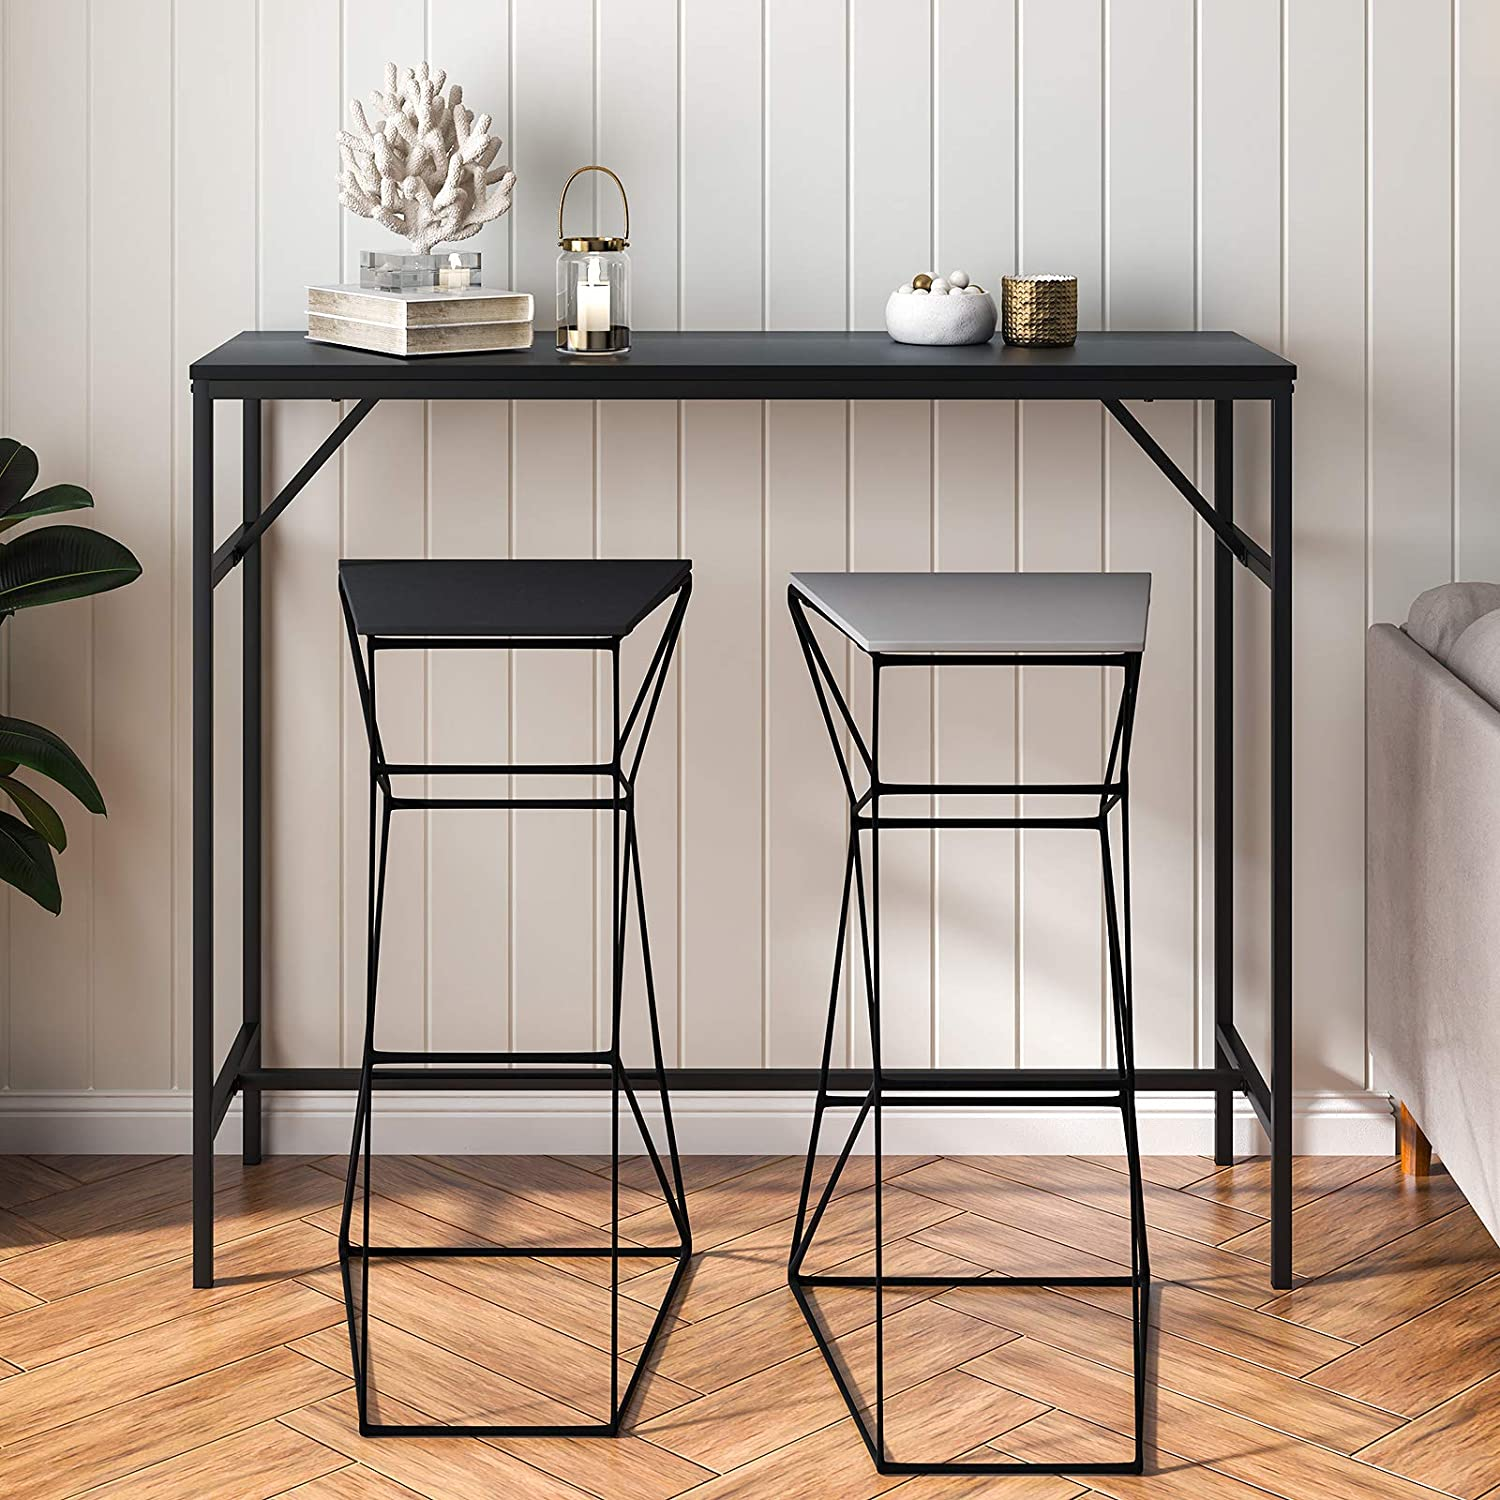 """YITAHOME Bar Table, 9.9"""" Long Bar Height Table Narrow Desktop, Classic Bar  Table Set for Pub Cafe Kitchen Dining Room Living Room, Sturdy Legs, Quick  ..."""